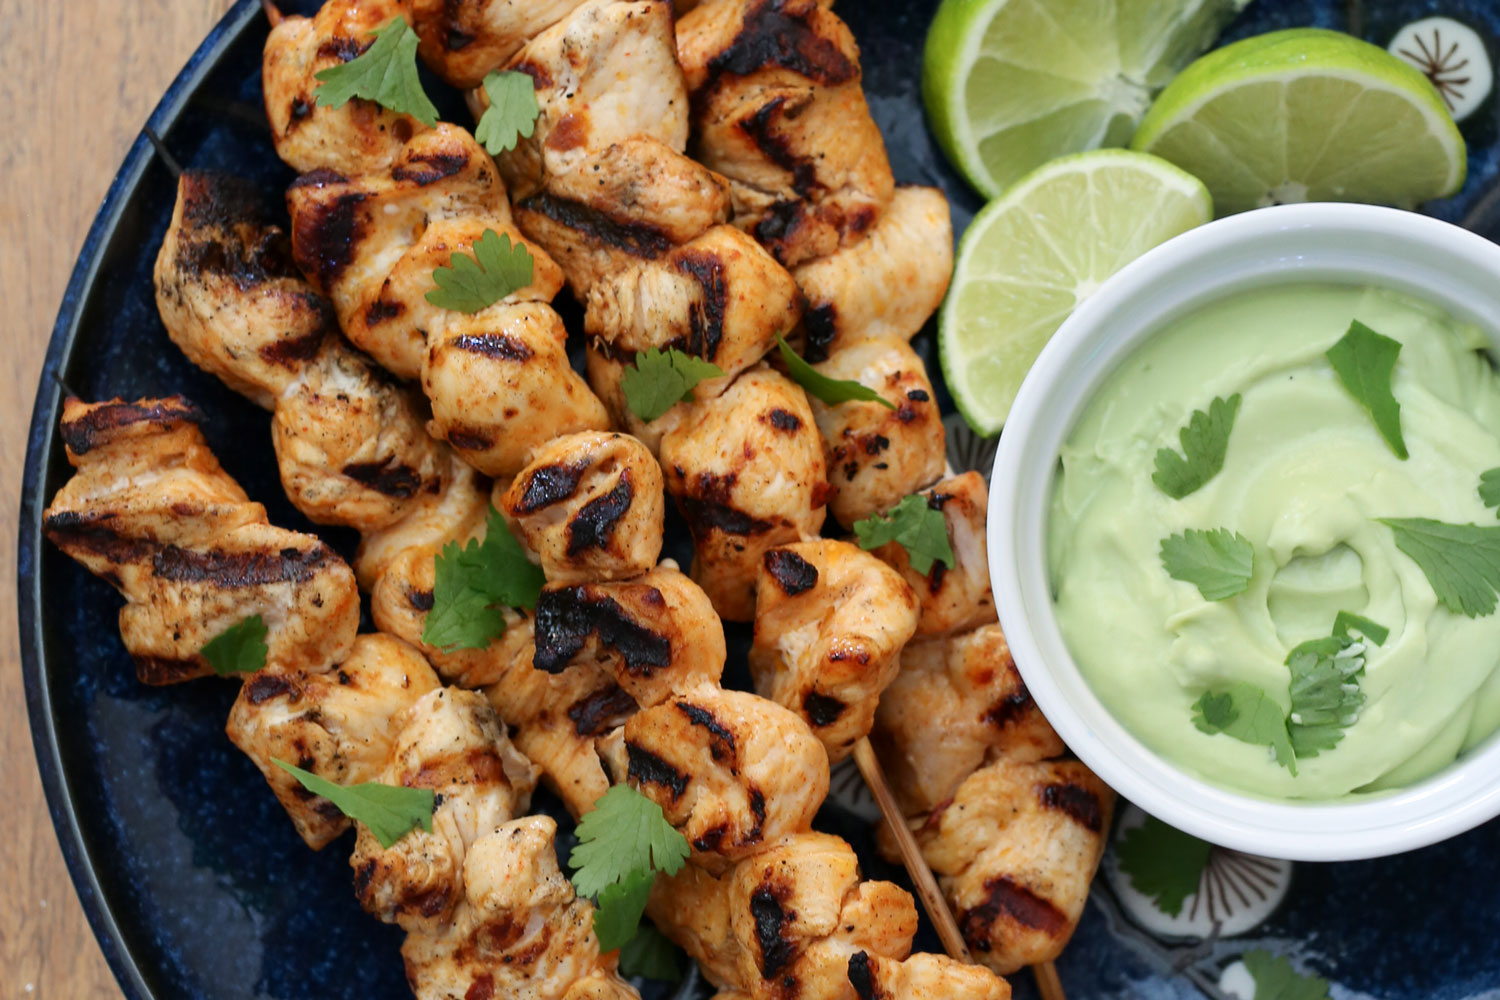 Chipotle Chicken Kabobs with Avocado Cream Sauce - recipe by Barefeet In The Kitchen